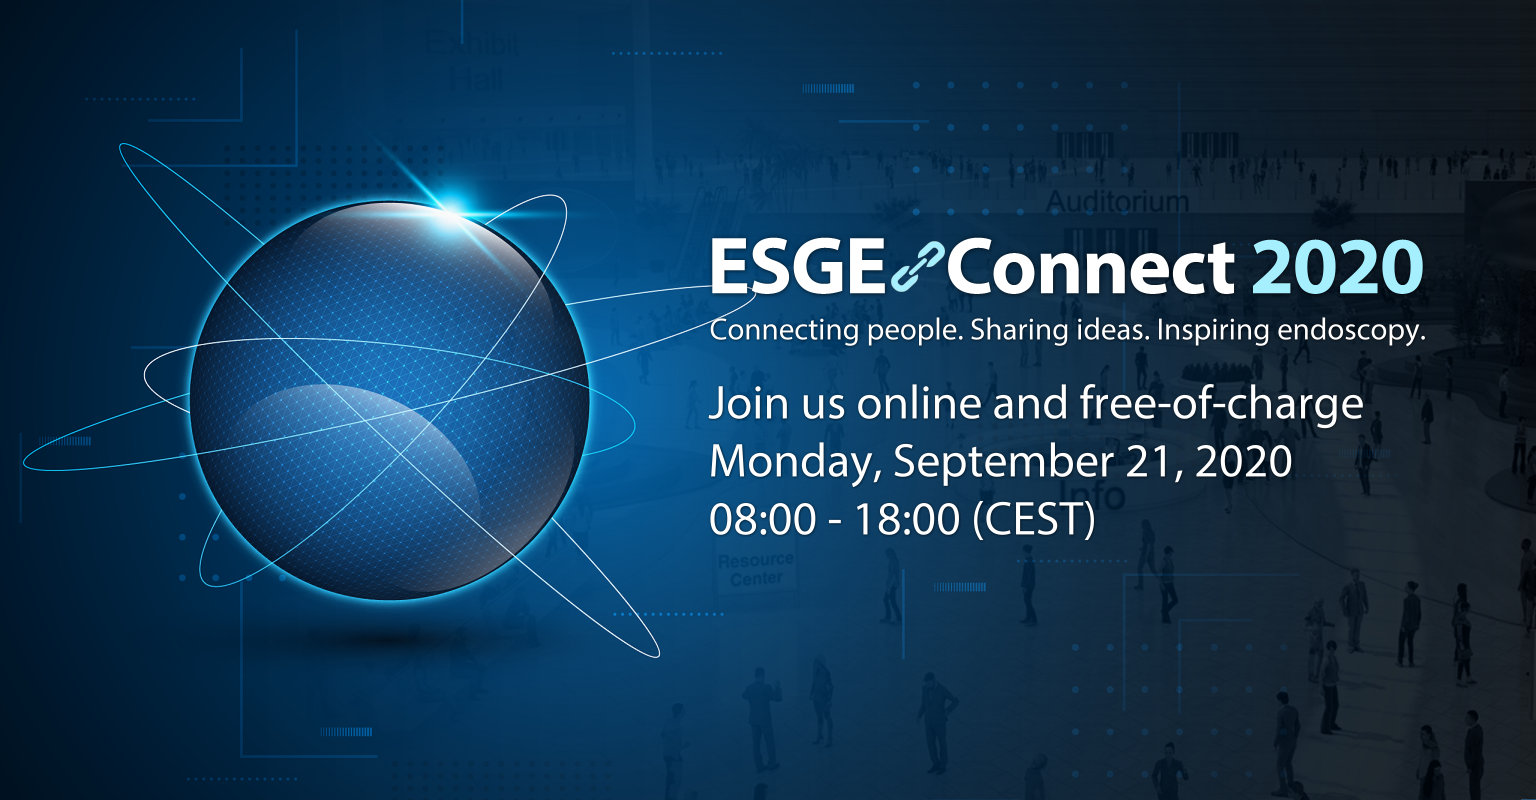 ESGE Connect 2020